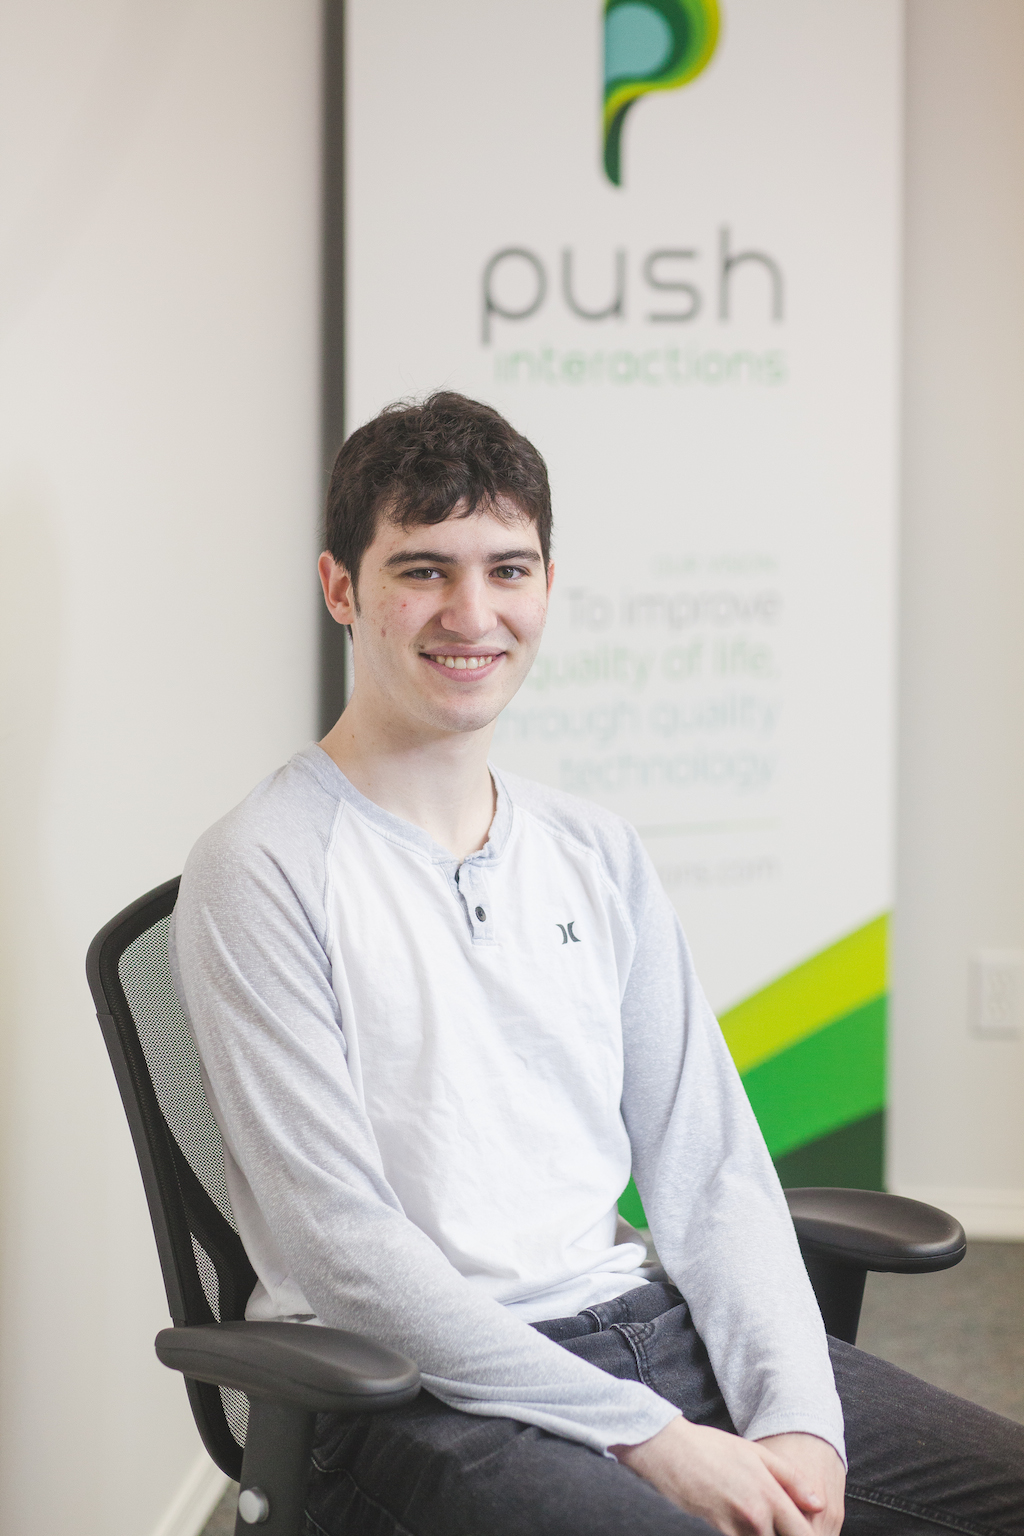 Meet Our Team - Daniel - Quality Assurance Engineer